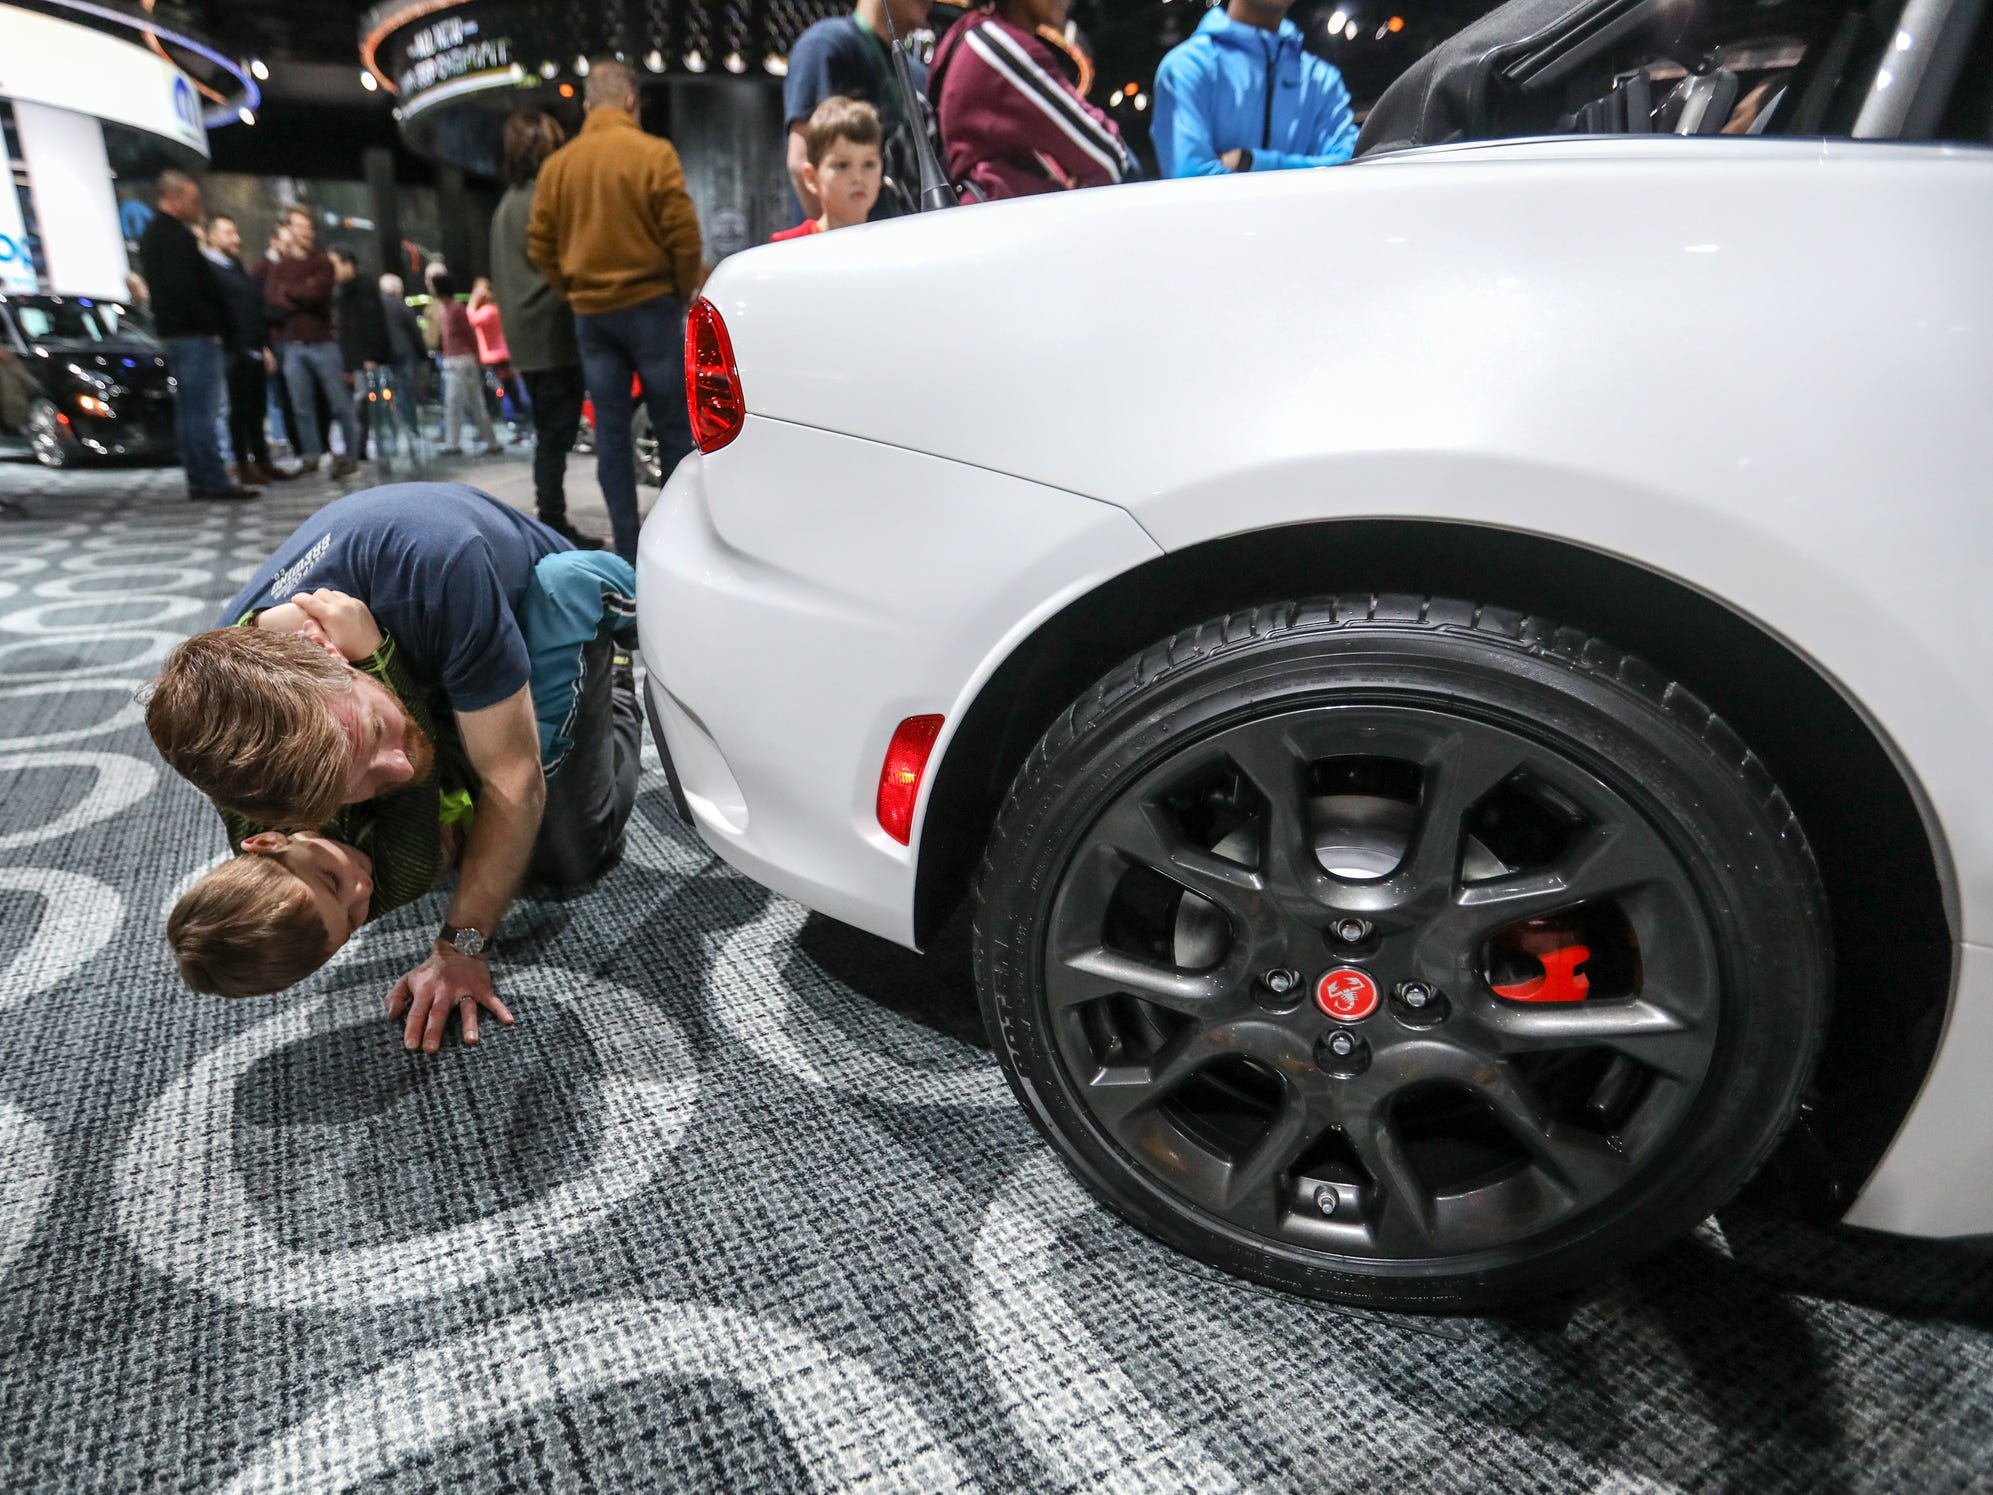 Kevin Mount, 39, of Yplsilanti checks out the suspension and drive train of the 2018 FIAT 124 Spider, with his son, Issac, 4, during the first public day of the North American International Auto Show in downtown Detroit on Saturday, Jan. 20, 2018.